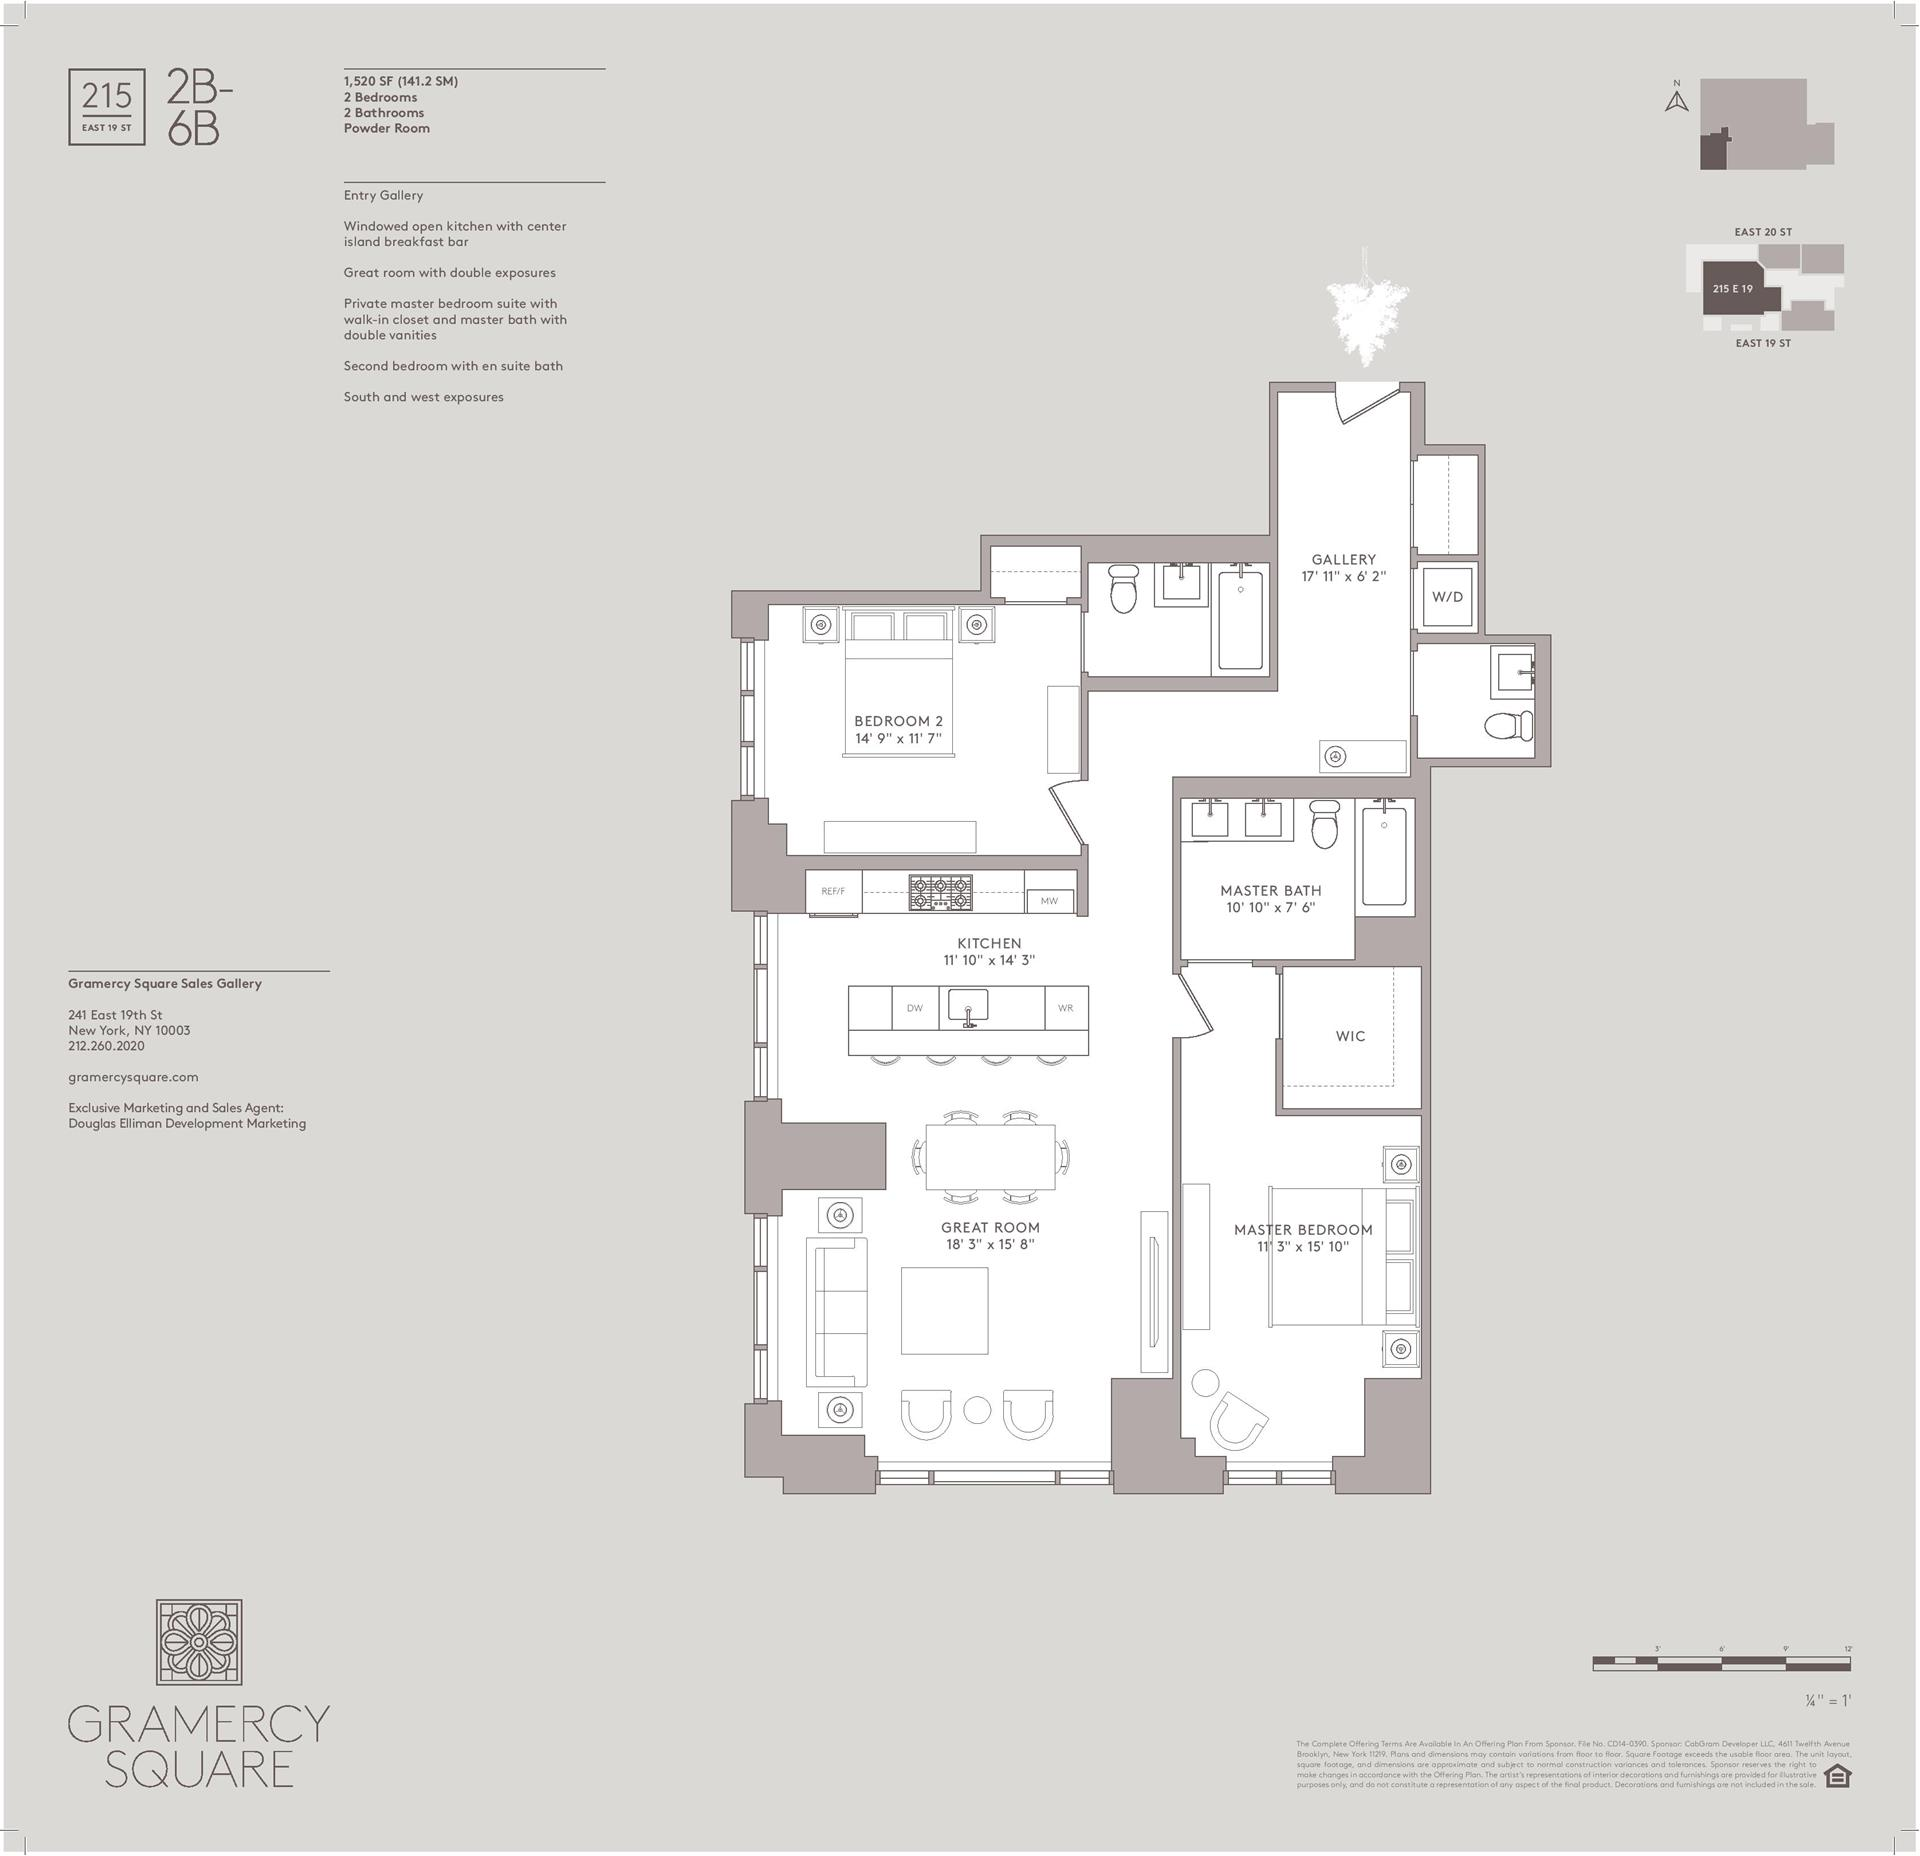 Floor plan of Gramercy Square, 215 East 19th St, 6B - Gramercy - Union Square, New York